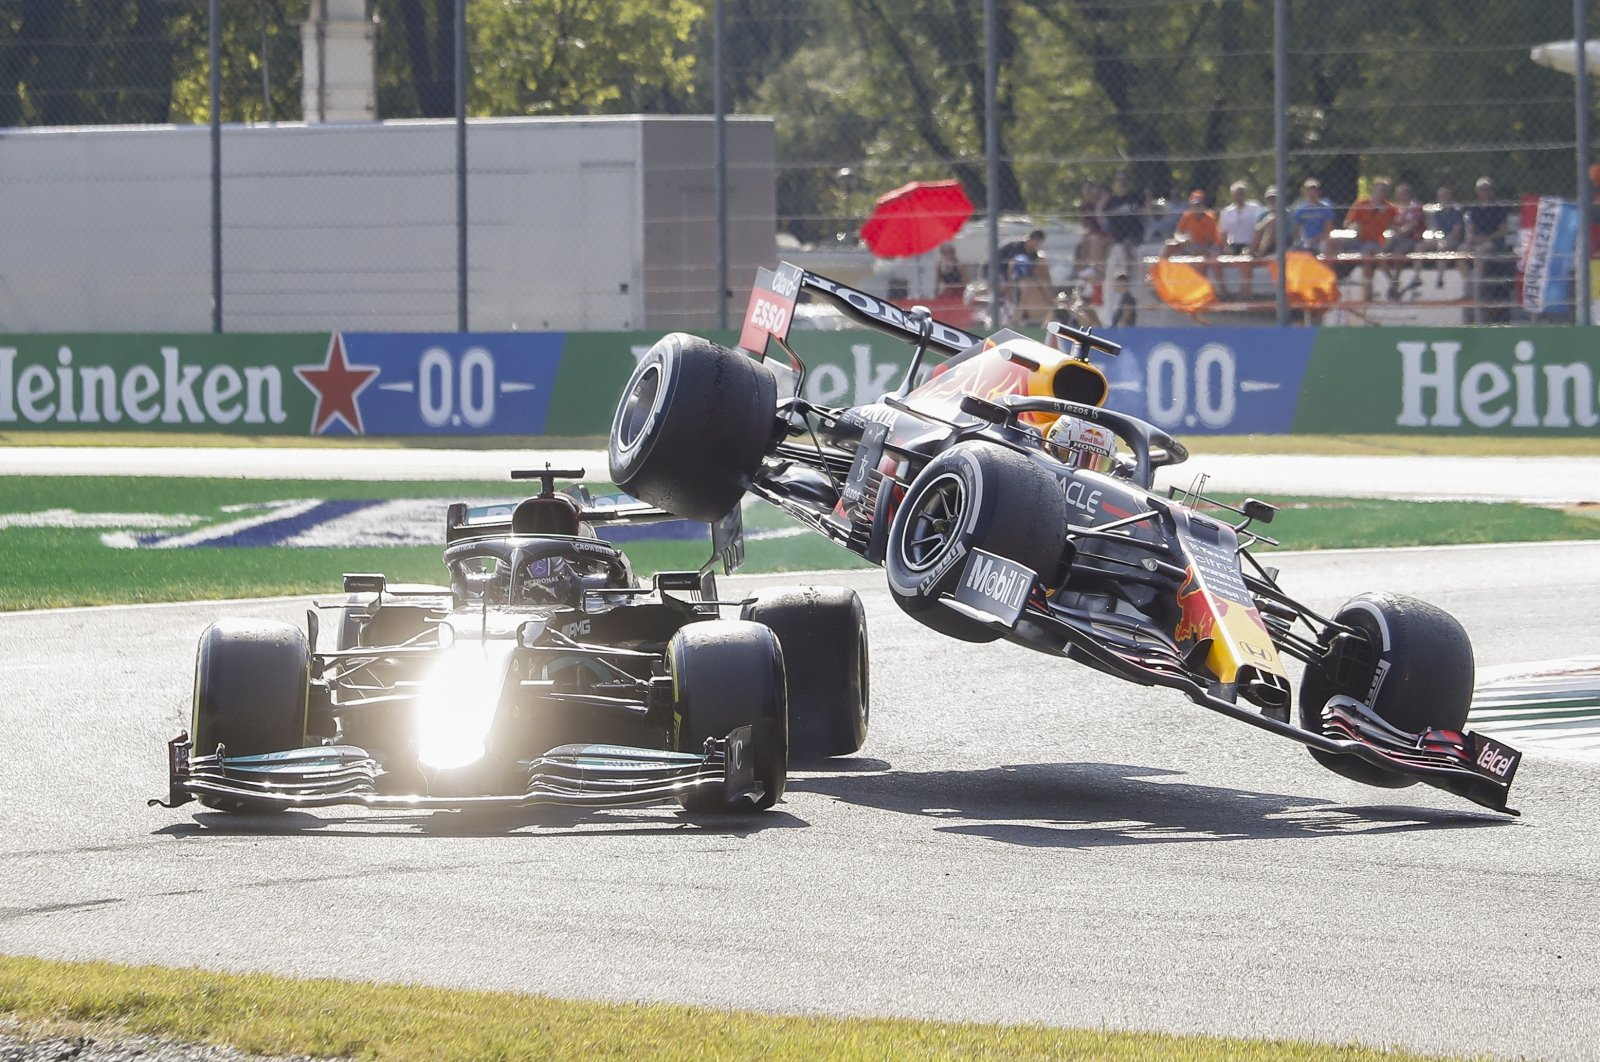 Red Bull's Dutch driver Max Verstappen (R) collides with Mercedes' British driver Lewis Hamilton (L) during the Formula One Grand Prix of Italy at Monza, Italy, Sept. 12, 2021. (EPA)